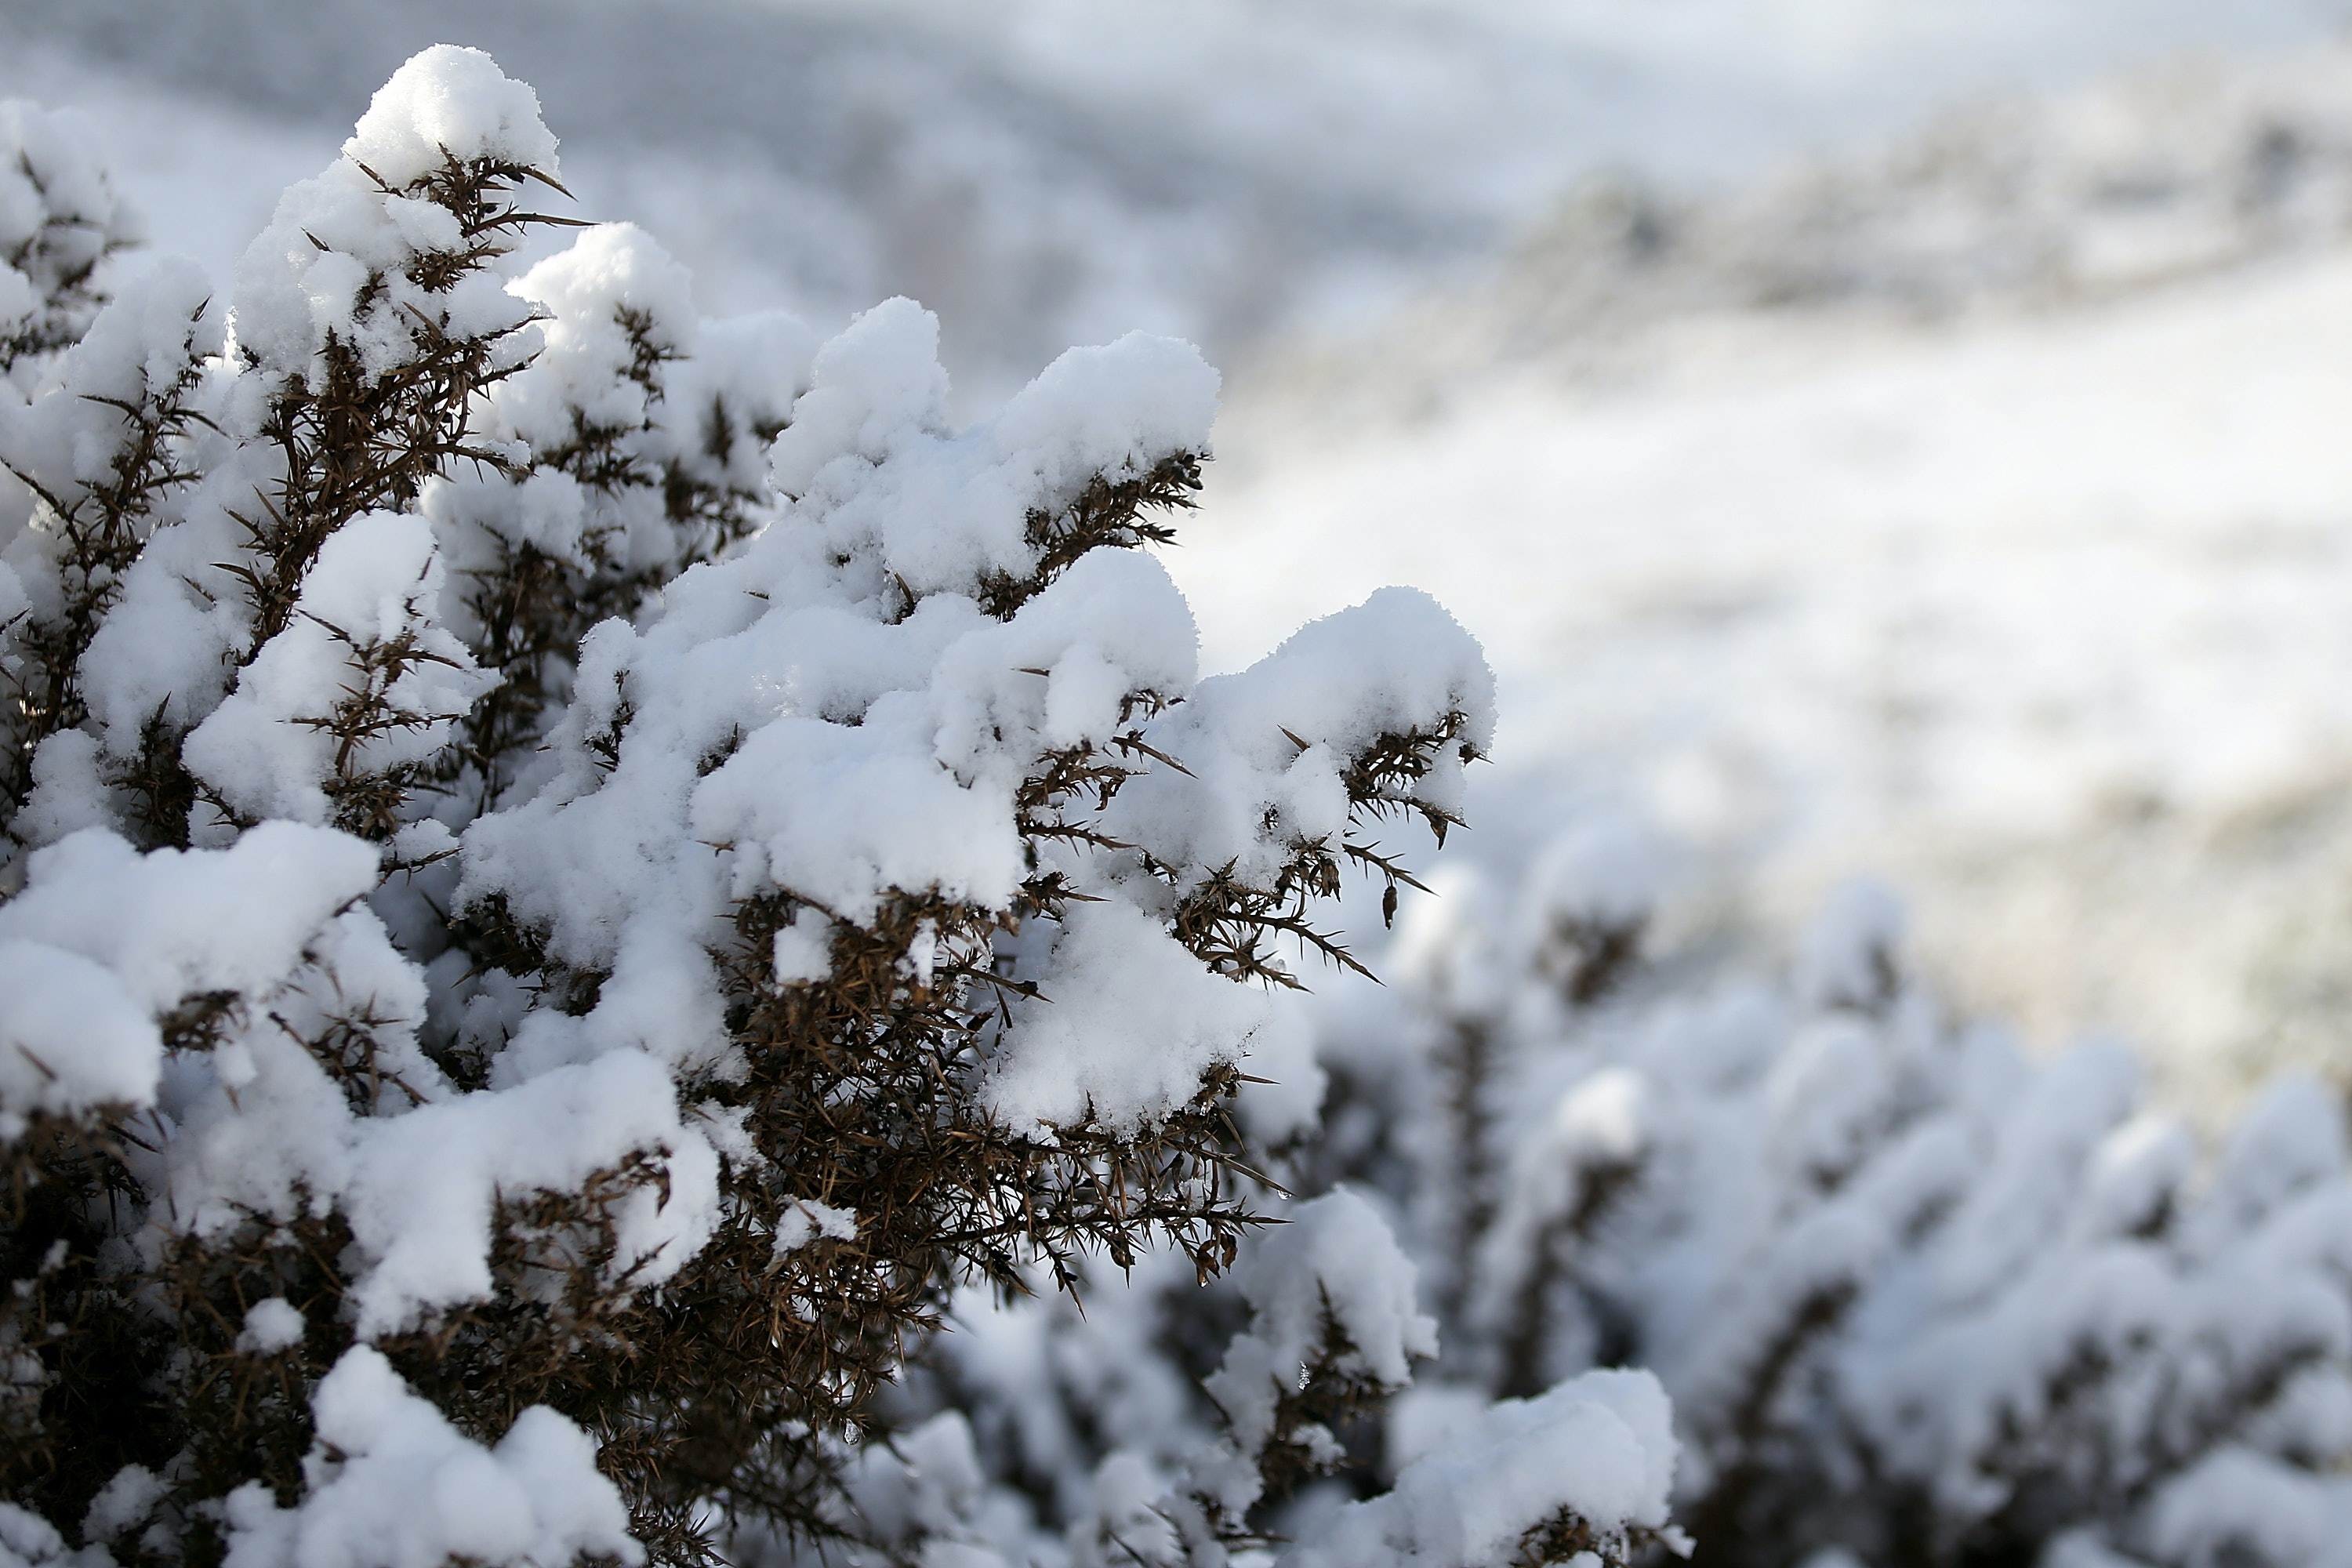 quotes about winter from literature that make the perfect